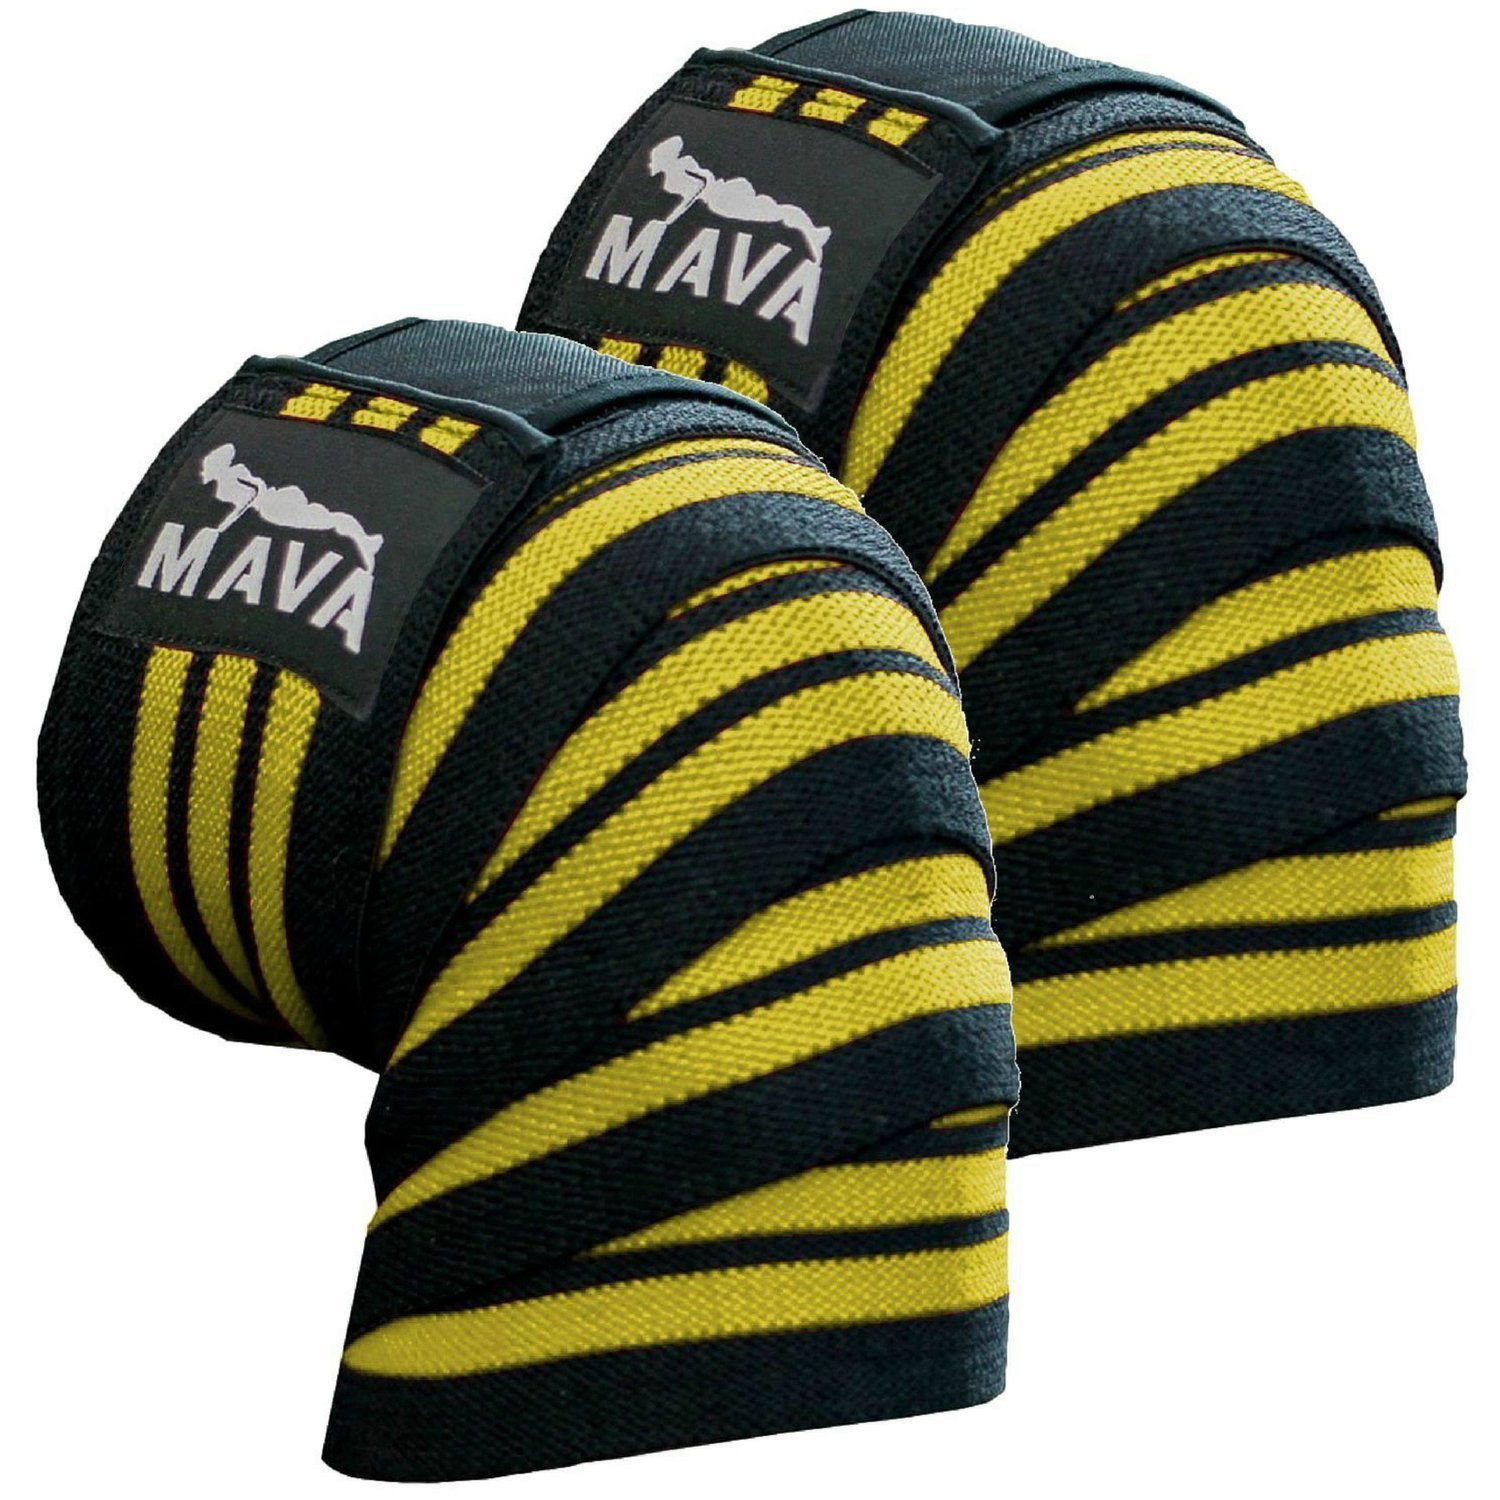 #2 Mava Knee Wraps (Pair)